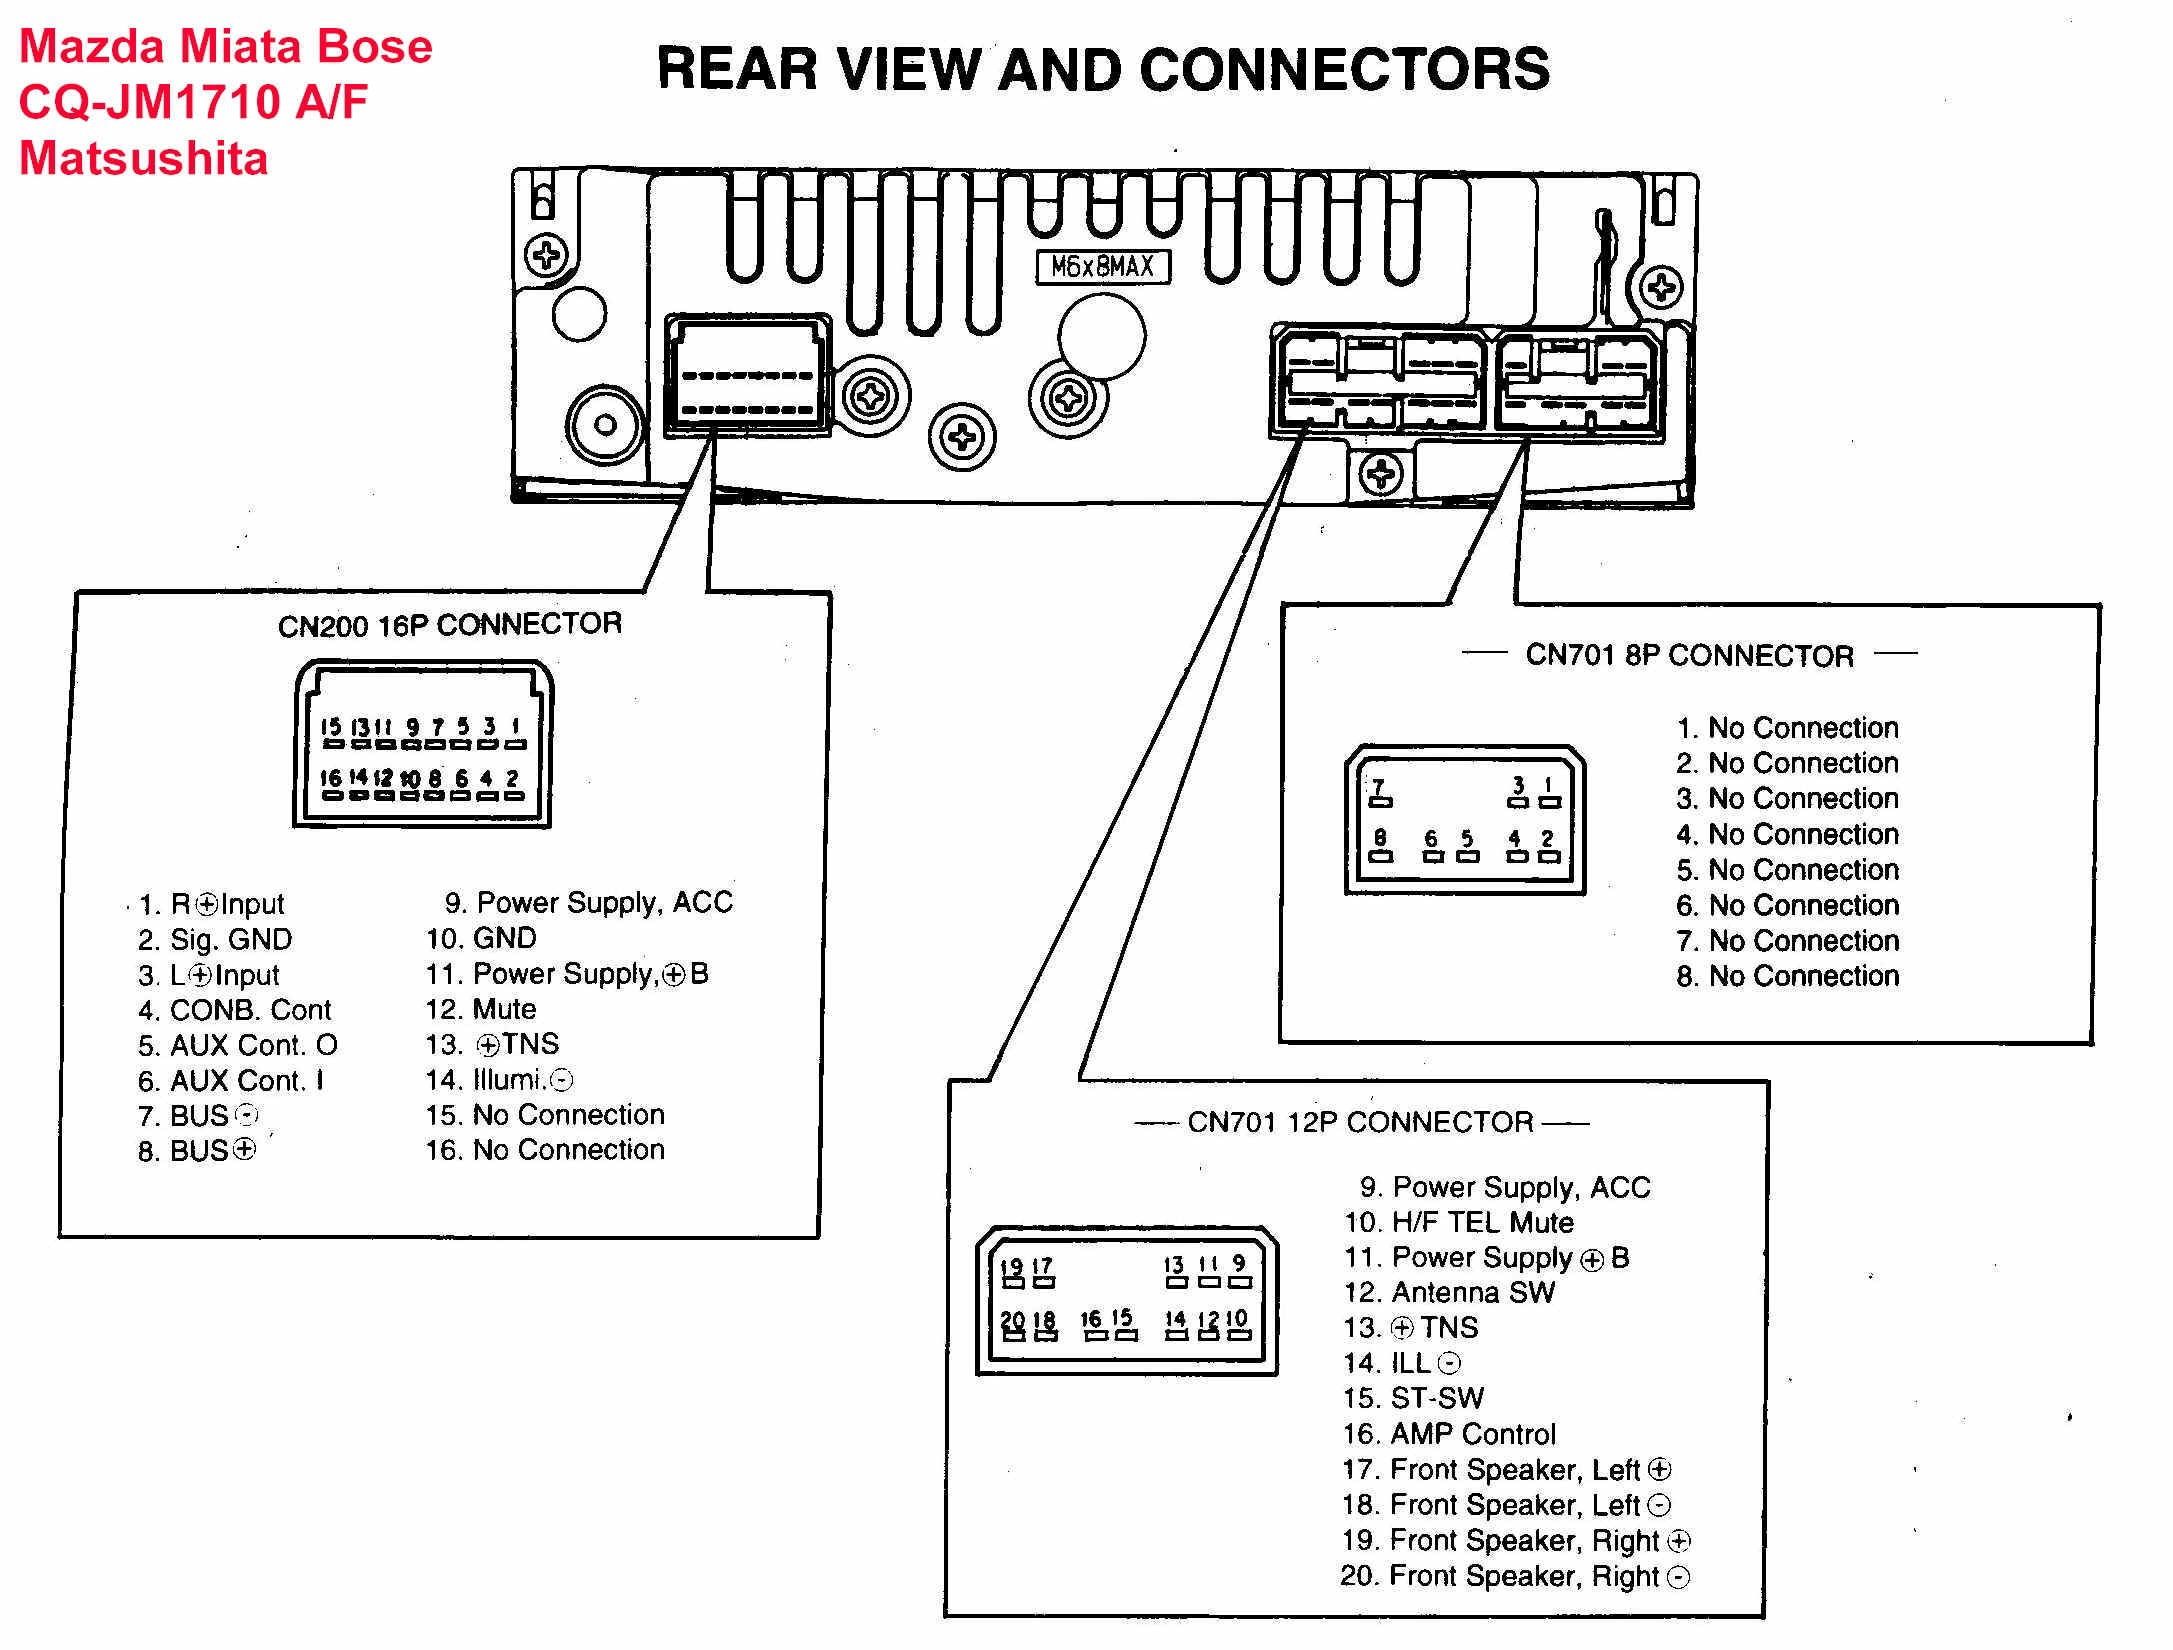 Car With Detaleted Wiring And Factory Stereo Diagrams WIRING DIAGRAM